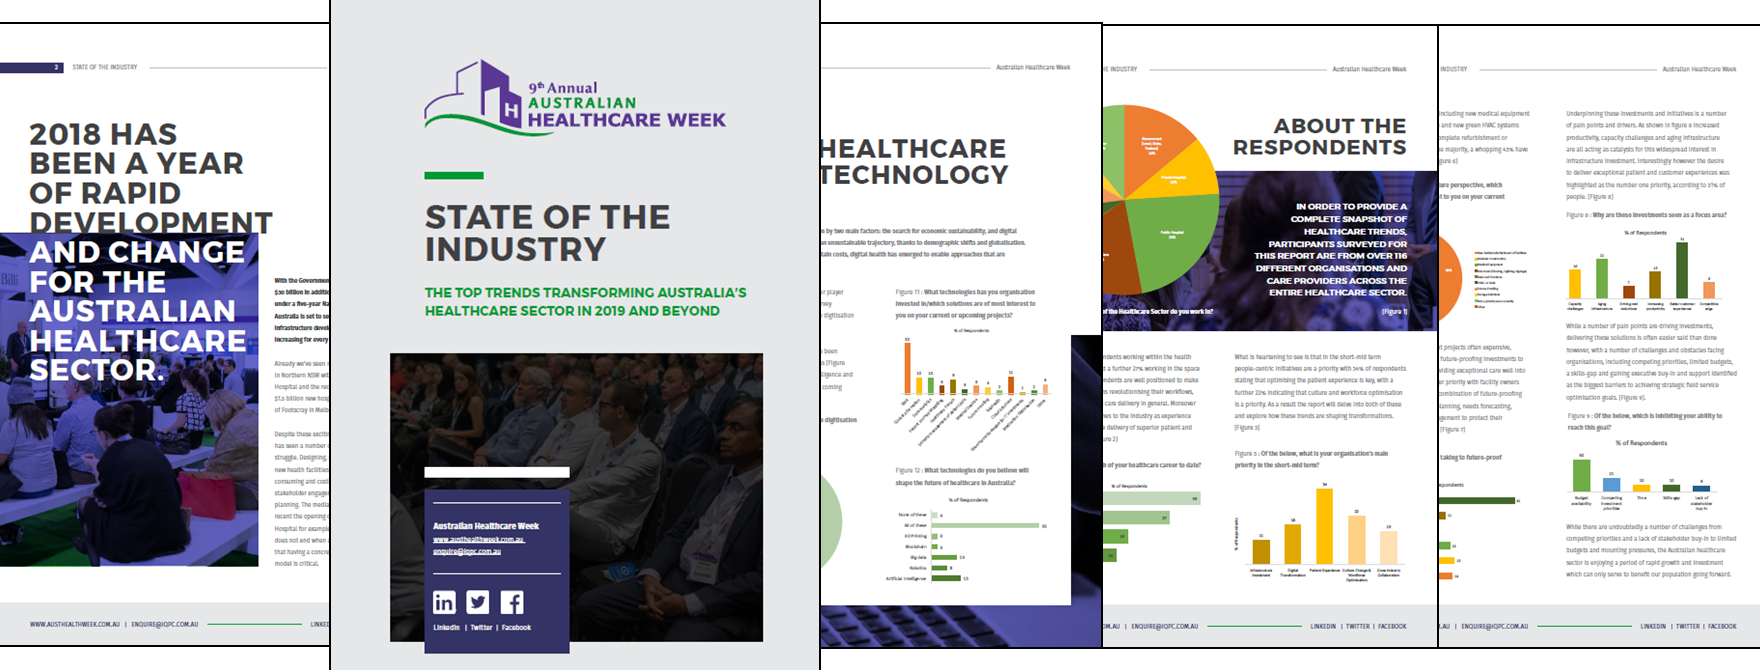 The Top Trends Driving Australia's Healthcare Sector in 2019 and Beyond